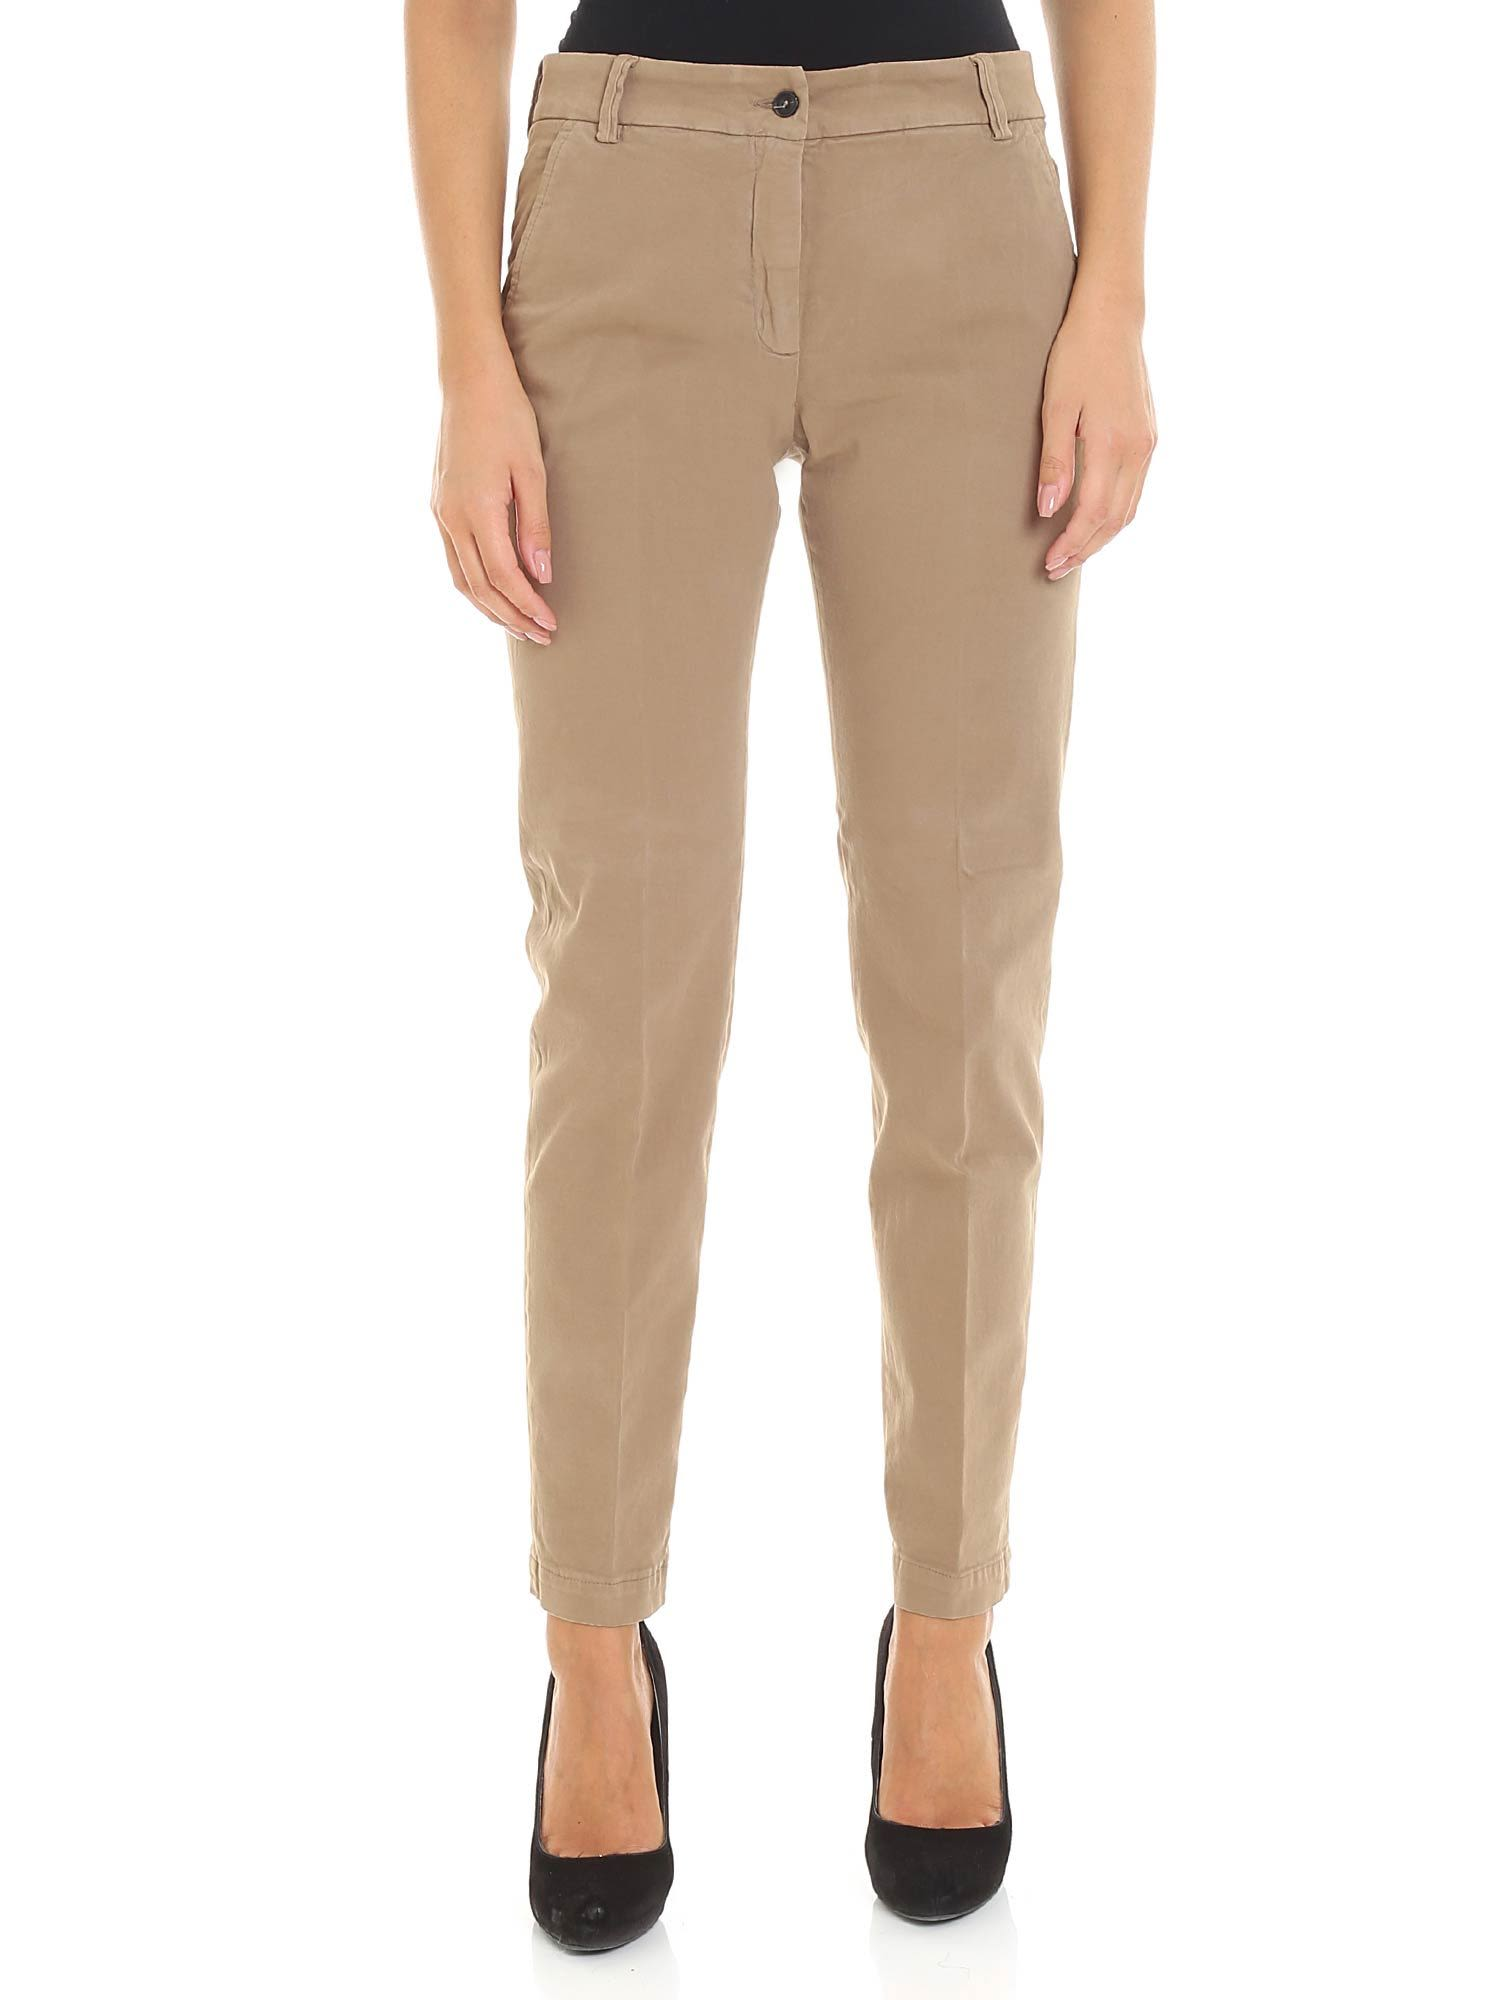 SEVENTY Classic Trousers in Basic